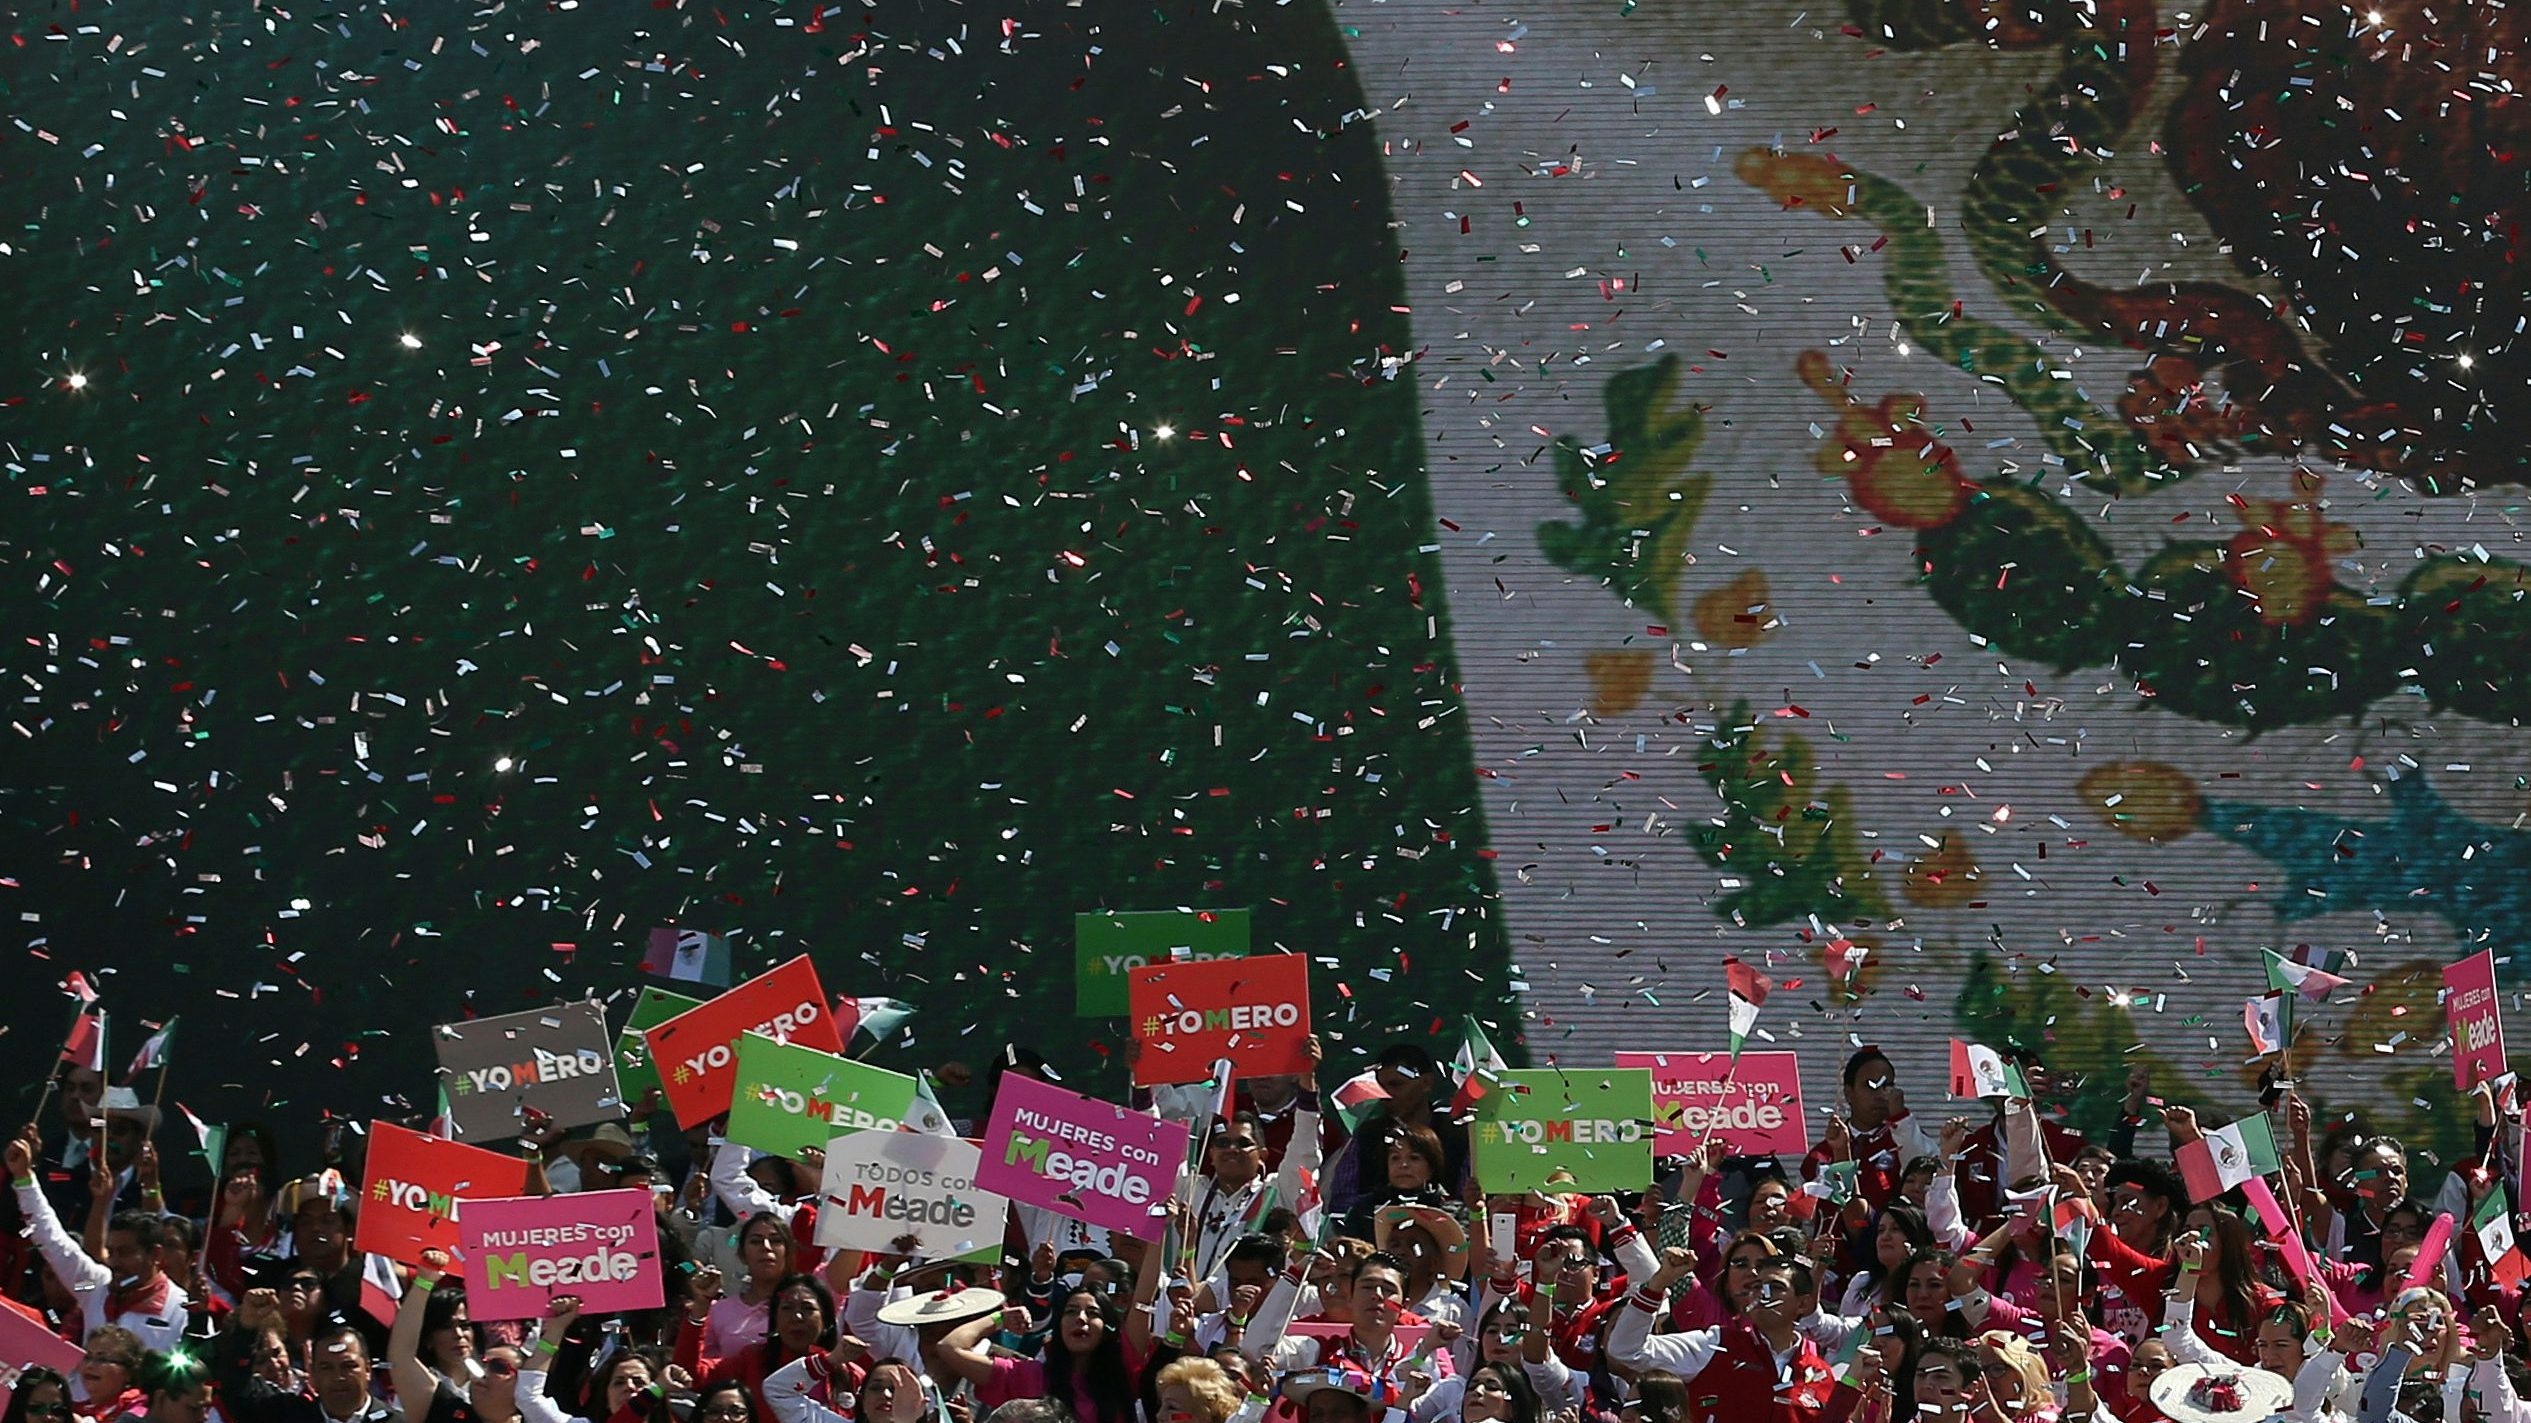 Jose Antonio Meade is the presidential candidate for Mexicos ruling party, PRI, in Sundays election